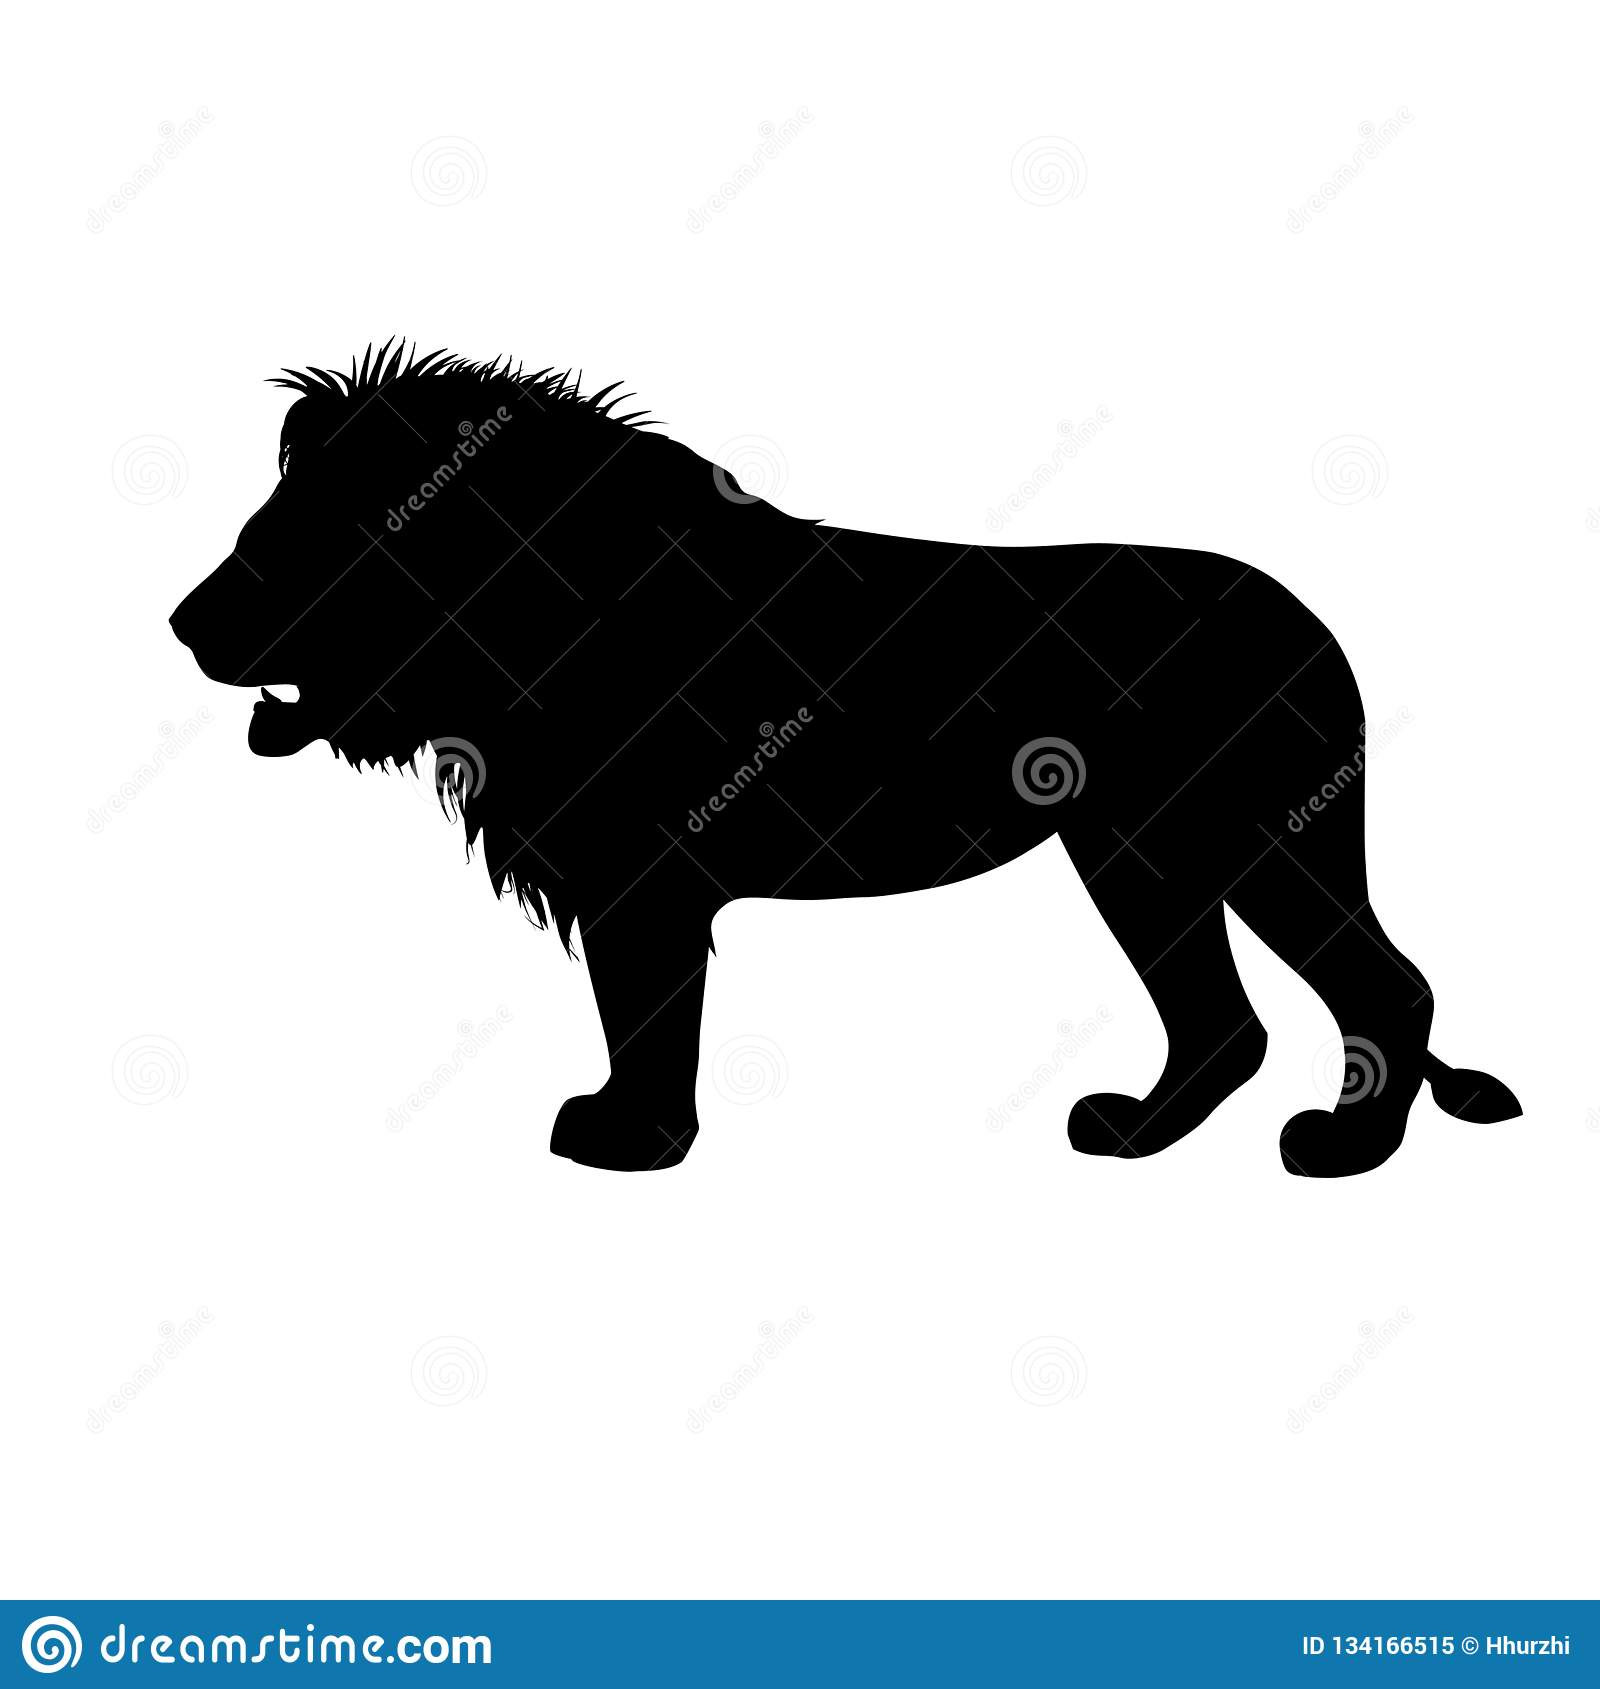 Regal Lion Silhouette Stock Illustrations 66 Regal Lion Silhouette Stock Illustrations Vectors Clipart Dreamstime 900+ vectors, stock photos & psd files. https www dreamstime com silhouette african lion standing side view vector illustration isolated white background image134166515